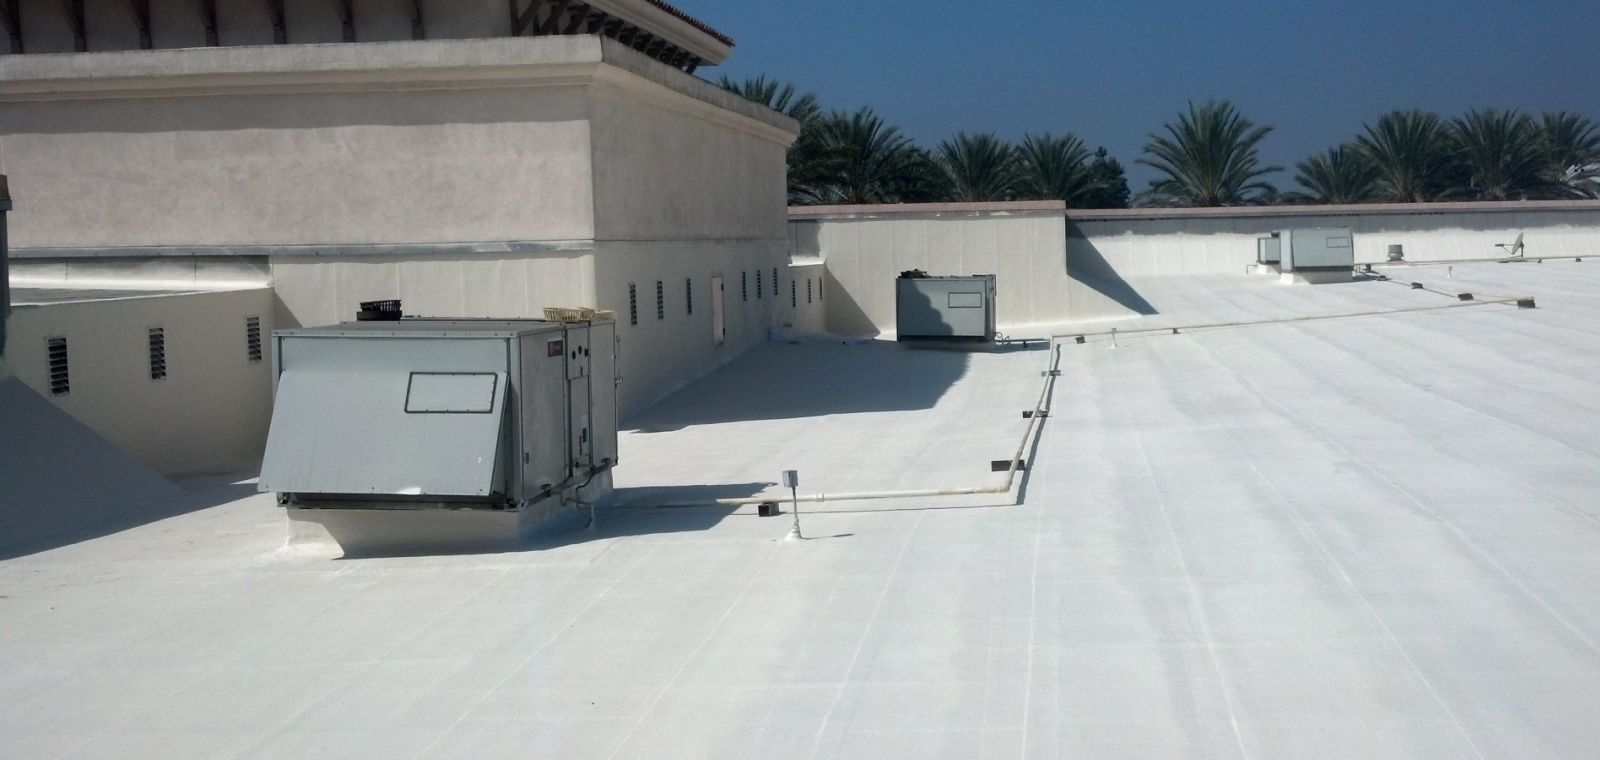 The Trials And Tribulations Of Replacement of a Commercial Roofing System